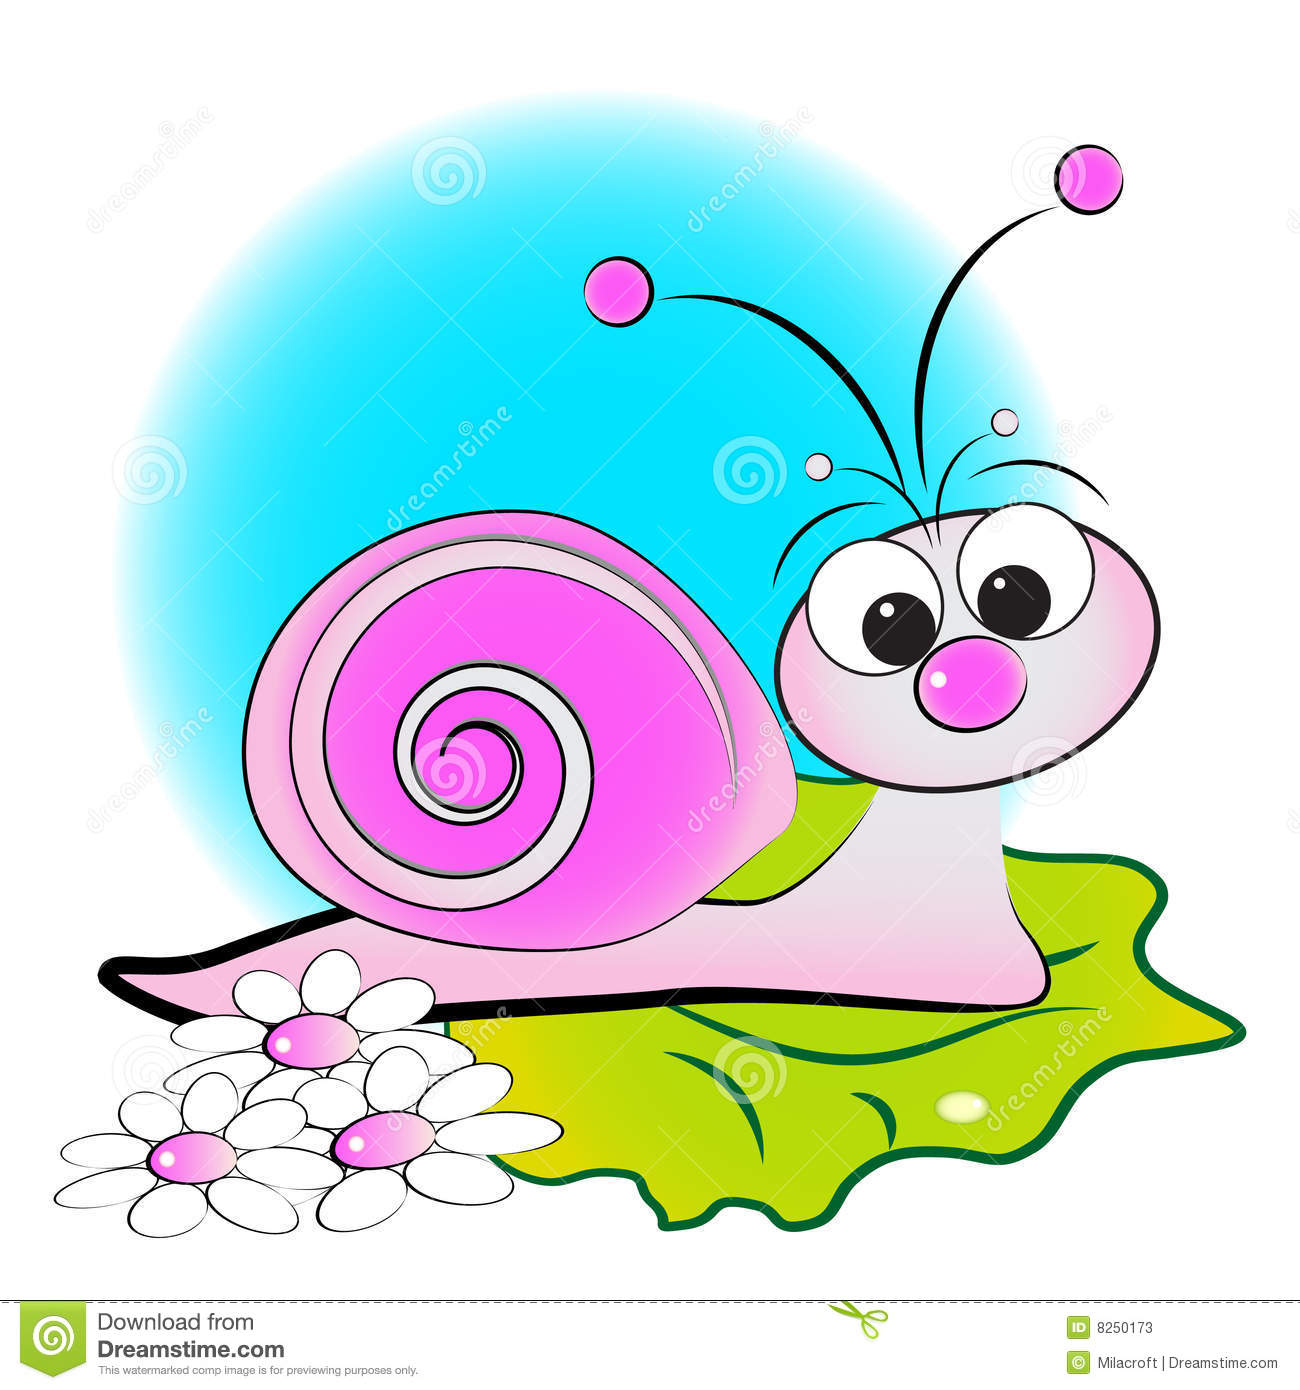 Stock Photos Snail Flowers Green Leaf Kid Illustration Image8250173 on funny cartoon animals labels vector